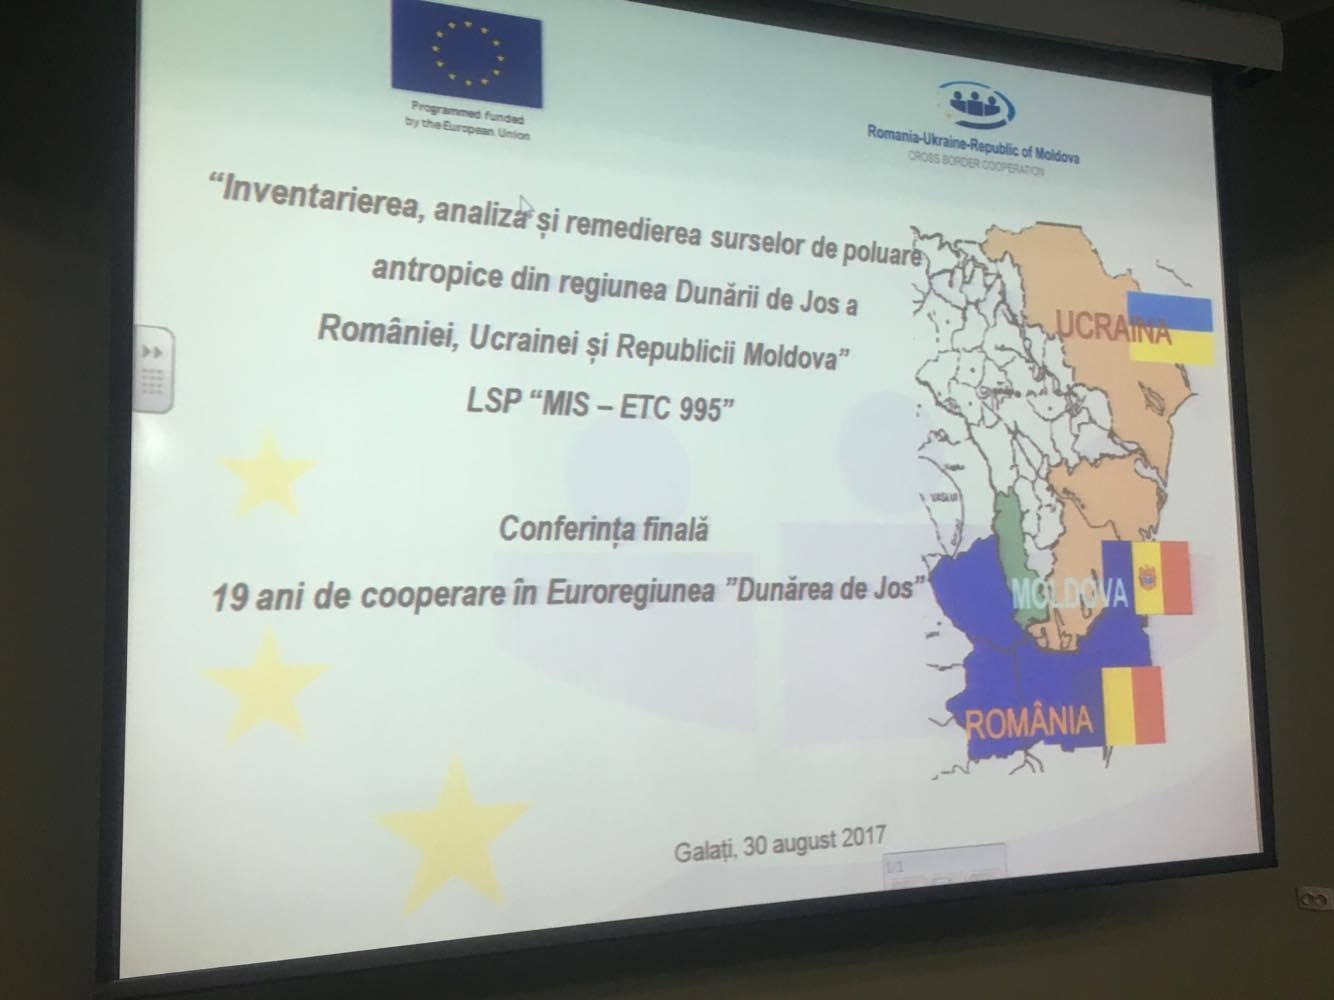 "<a class=""amazingslider-posttitle-link"" href=""https://www.euroregiune.org/en/international-final-conference-project-inventory-analysis-remediation-anthropogenic-pollution-sources-lower-danube-region-romania-ukraine-republic-moldova/"" target=""_self"">International Final Conference on the project ""Inventory, Analysis and Remediation of Anthropogenic Pollution Sources in the Lower Danube Region of Romania, Ukraine and the Republic of Moldova""</a>"